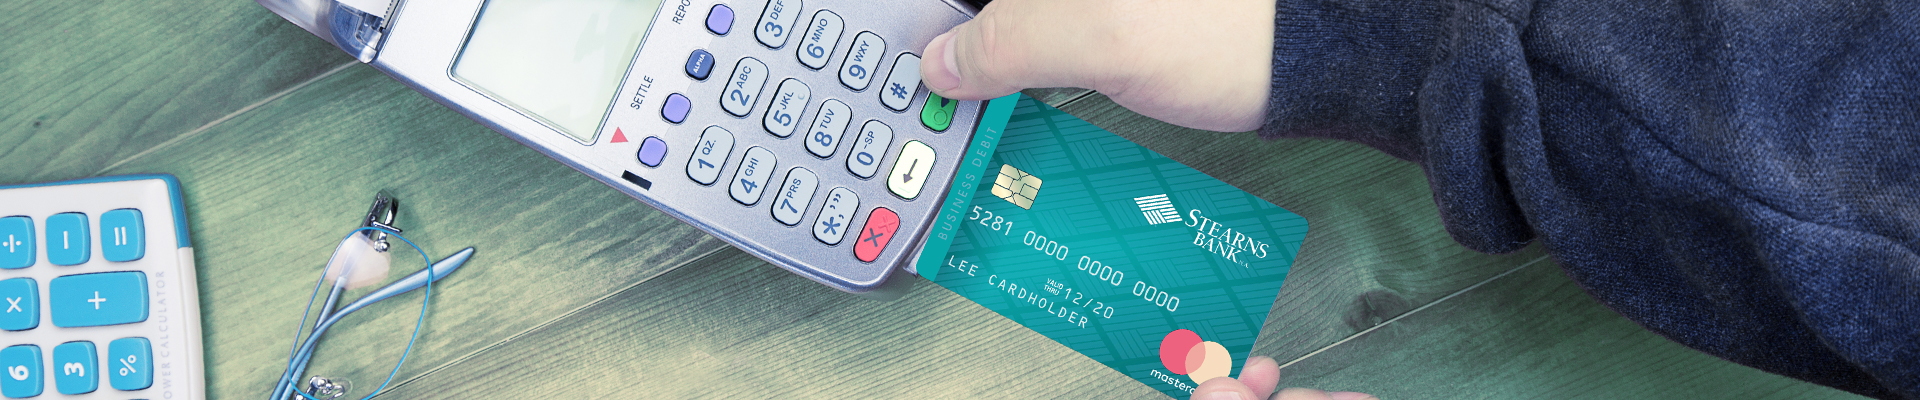 credit card reader taking electronic payment